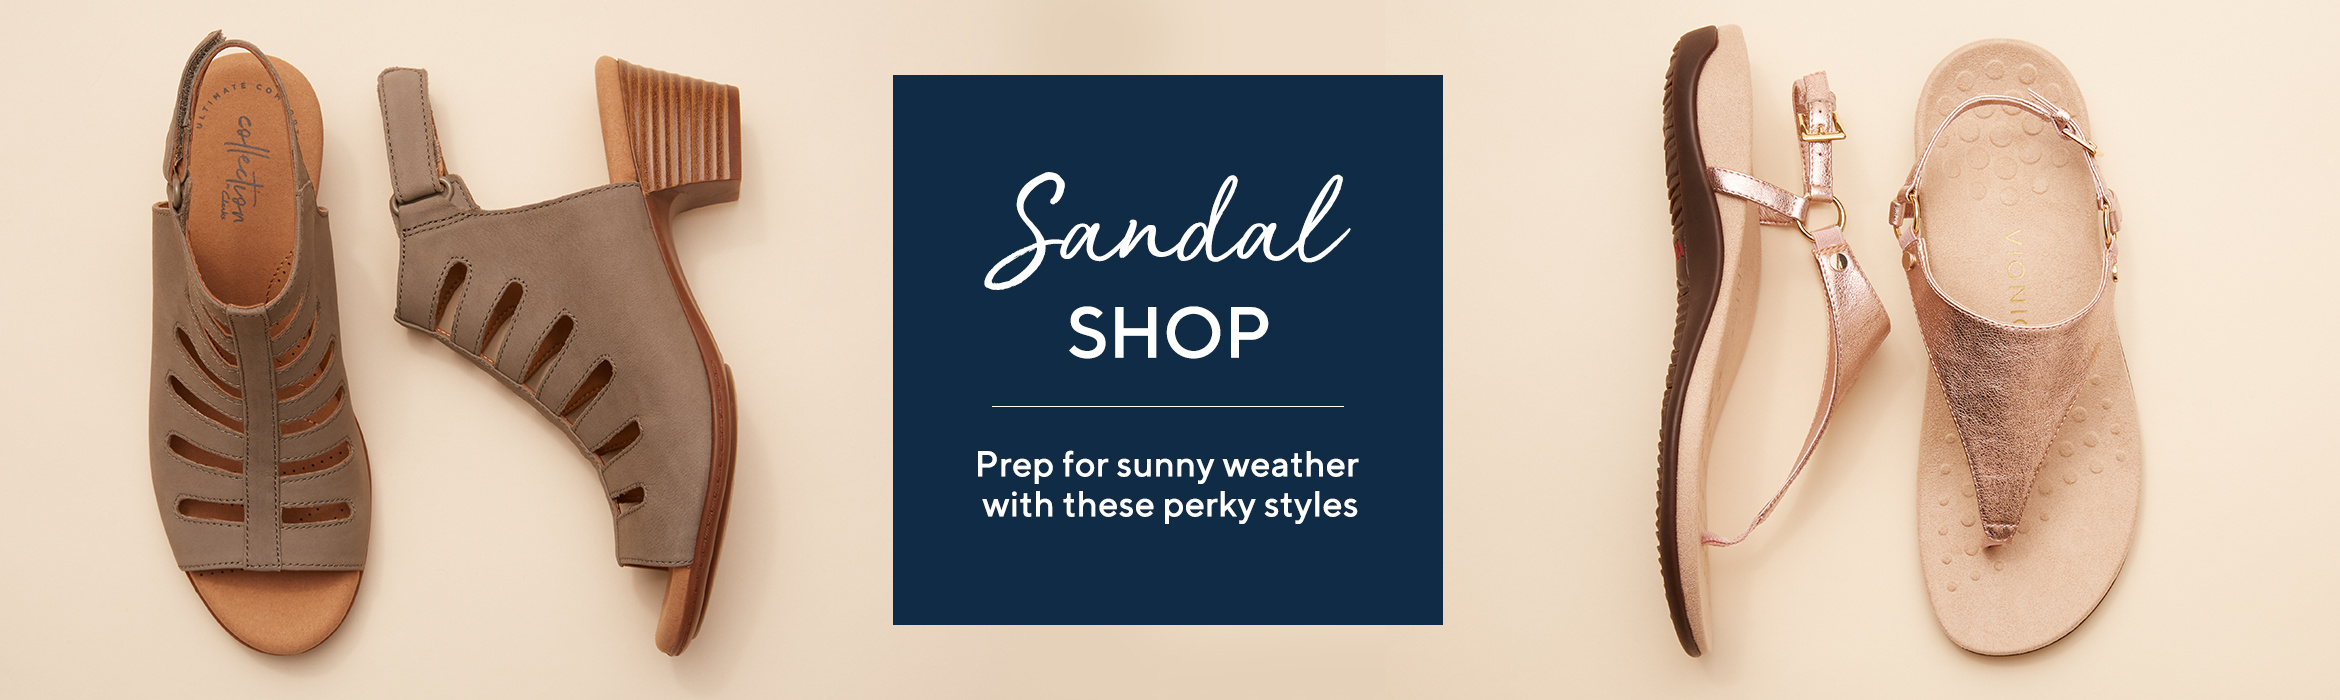 The Sandal Shop. Prep for sunny weather with these perky styles